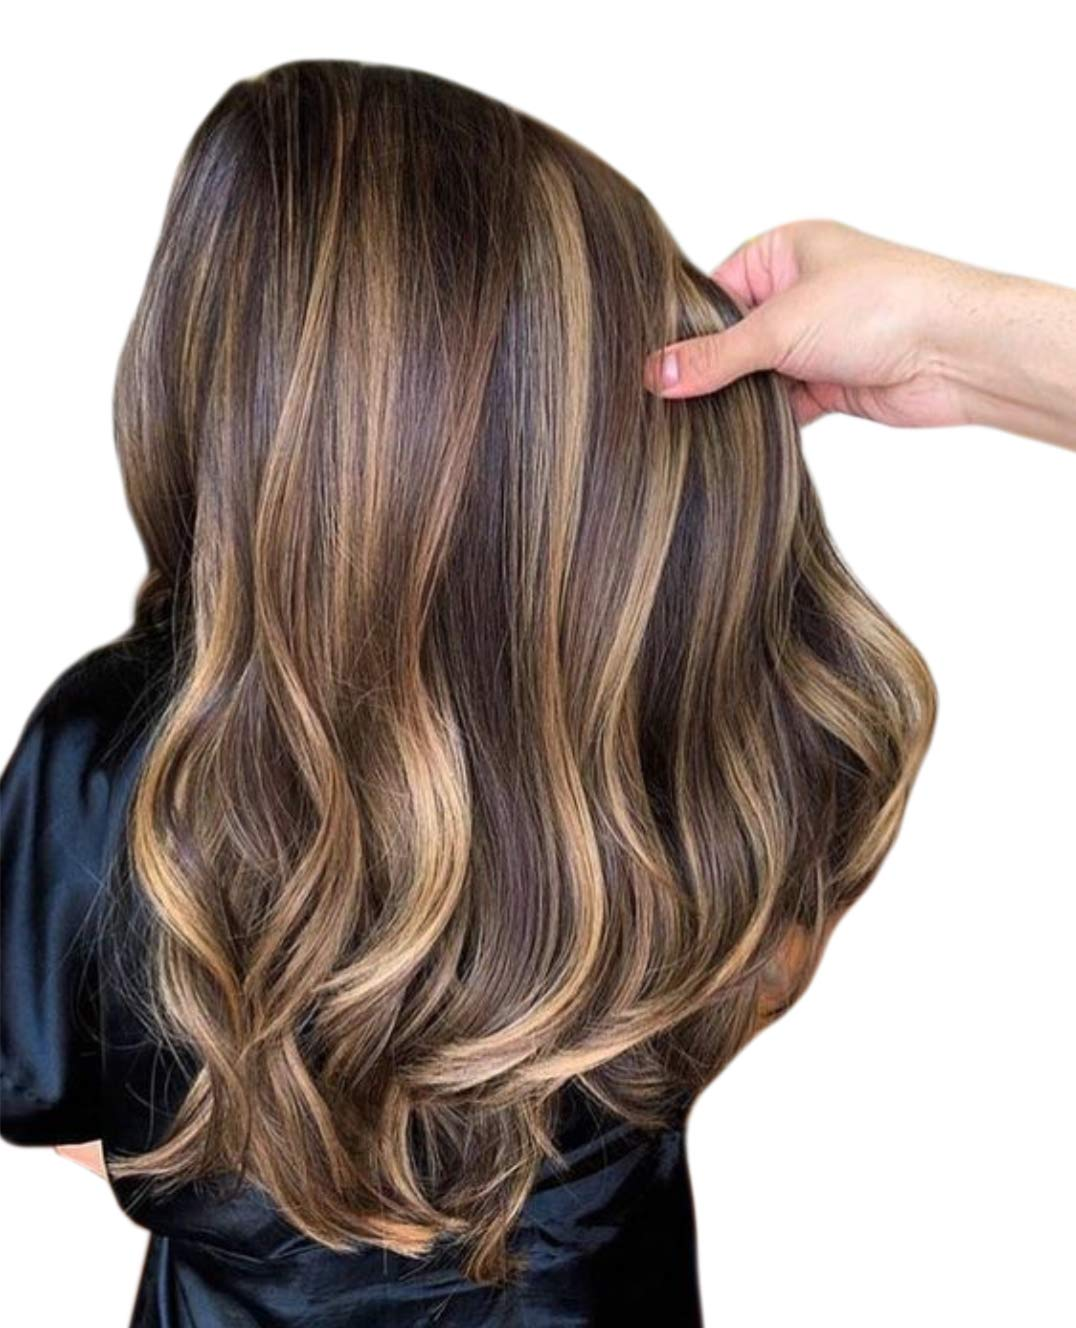 Hetto Invisible Tape in Human Hair Extensions #4 Dark Brown and #27 Caramel Blonde Real Hair Extensions Glue in Brazilian Hair for Short 24 Inch 20 Pieces 50Grams